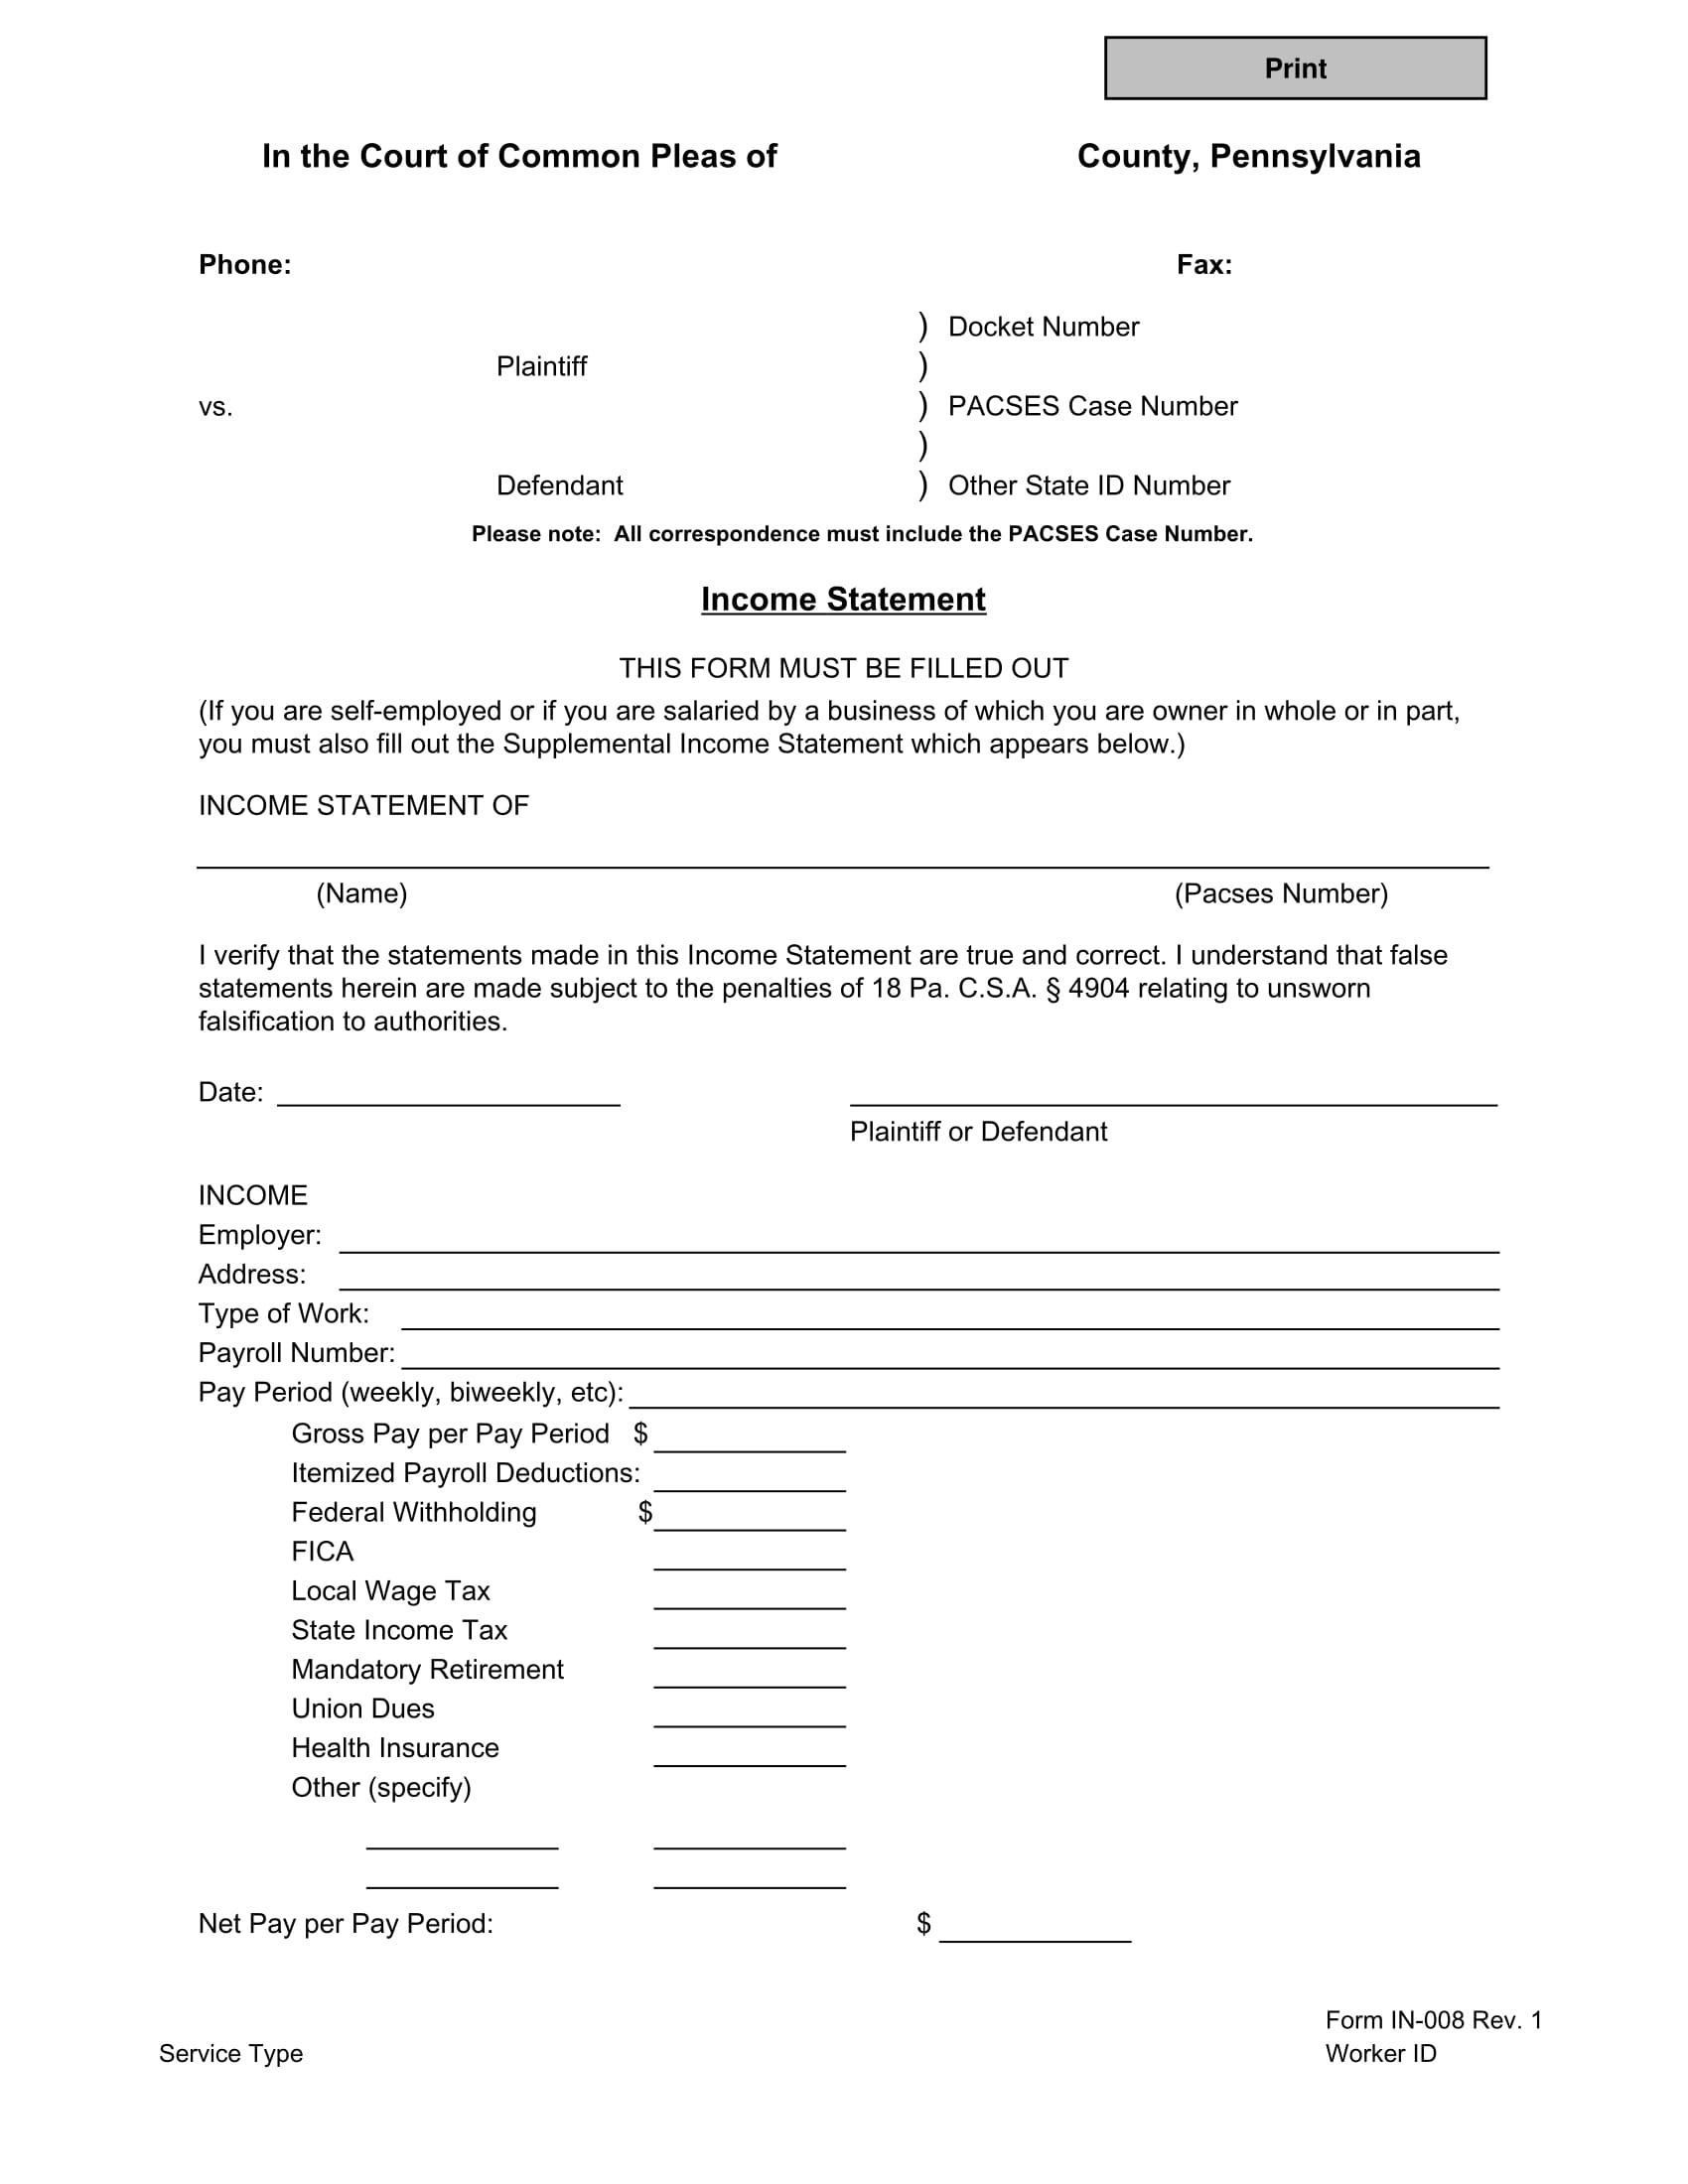 court use income statement form 1